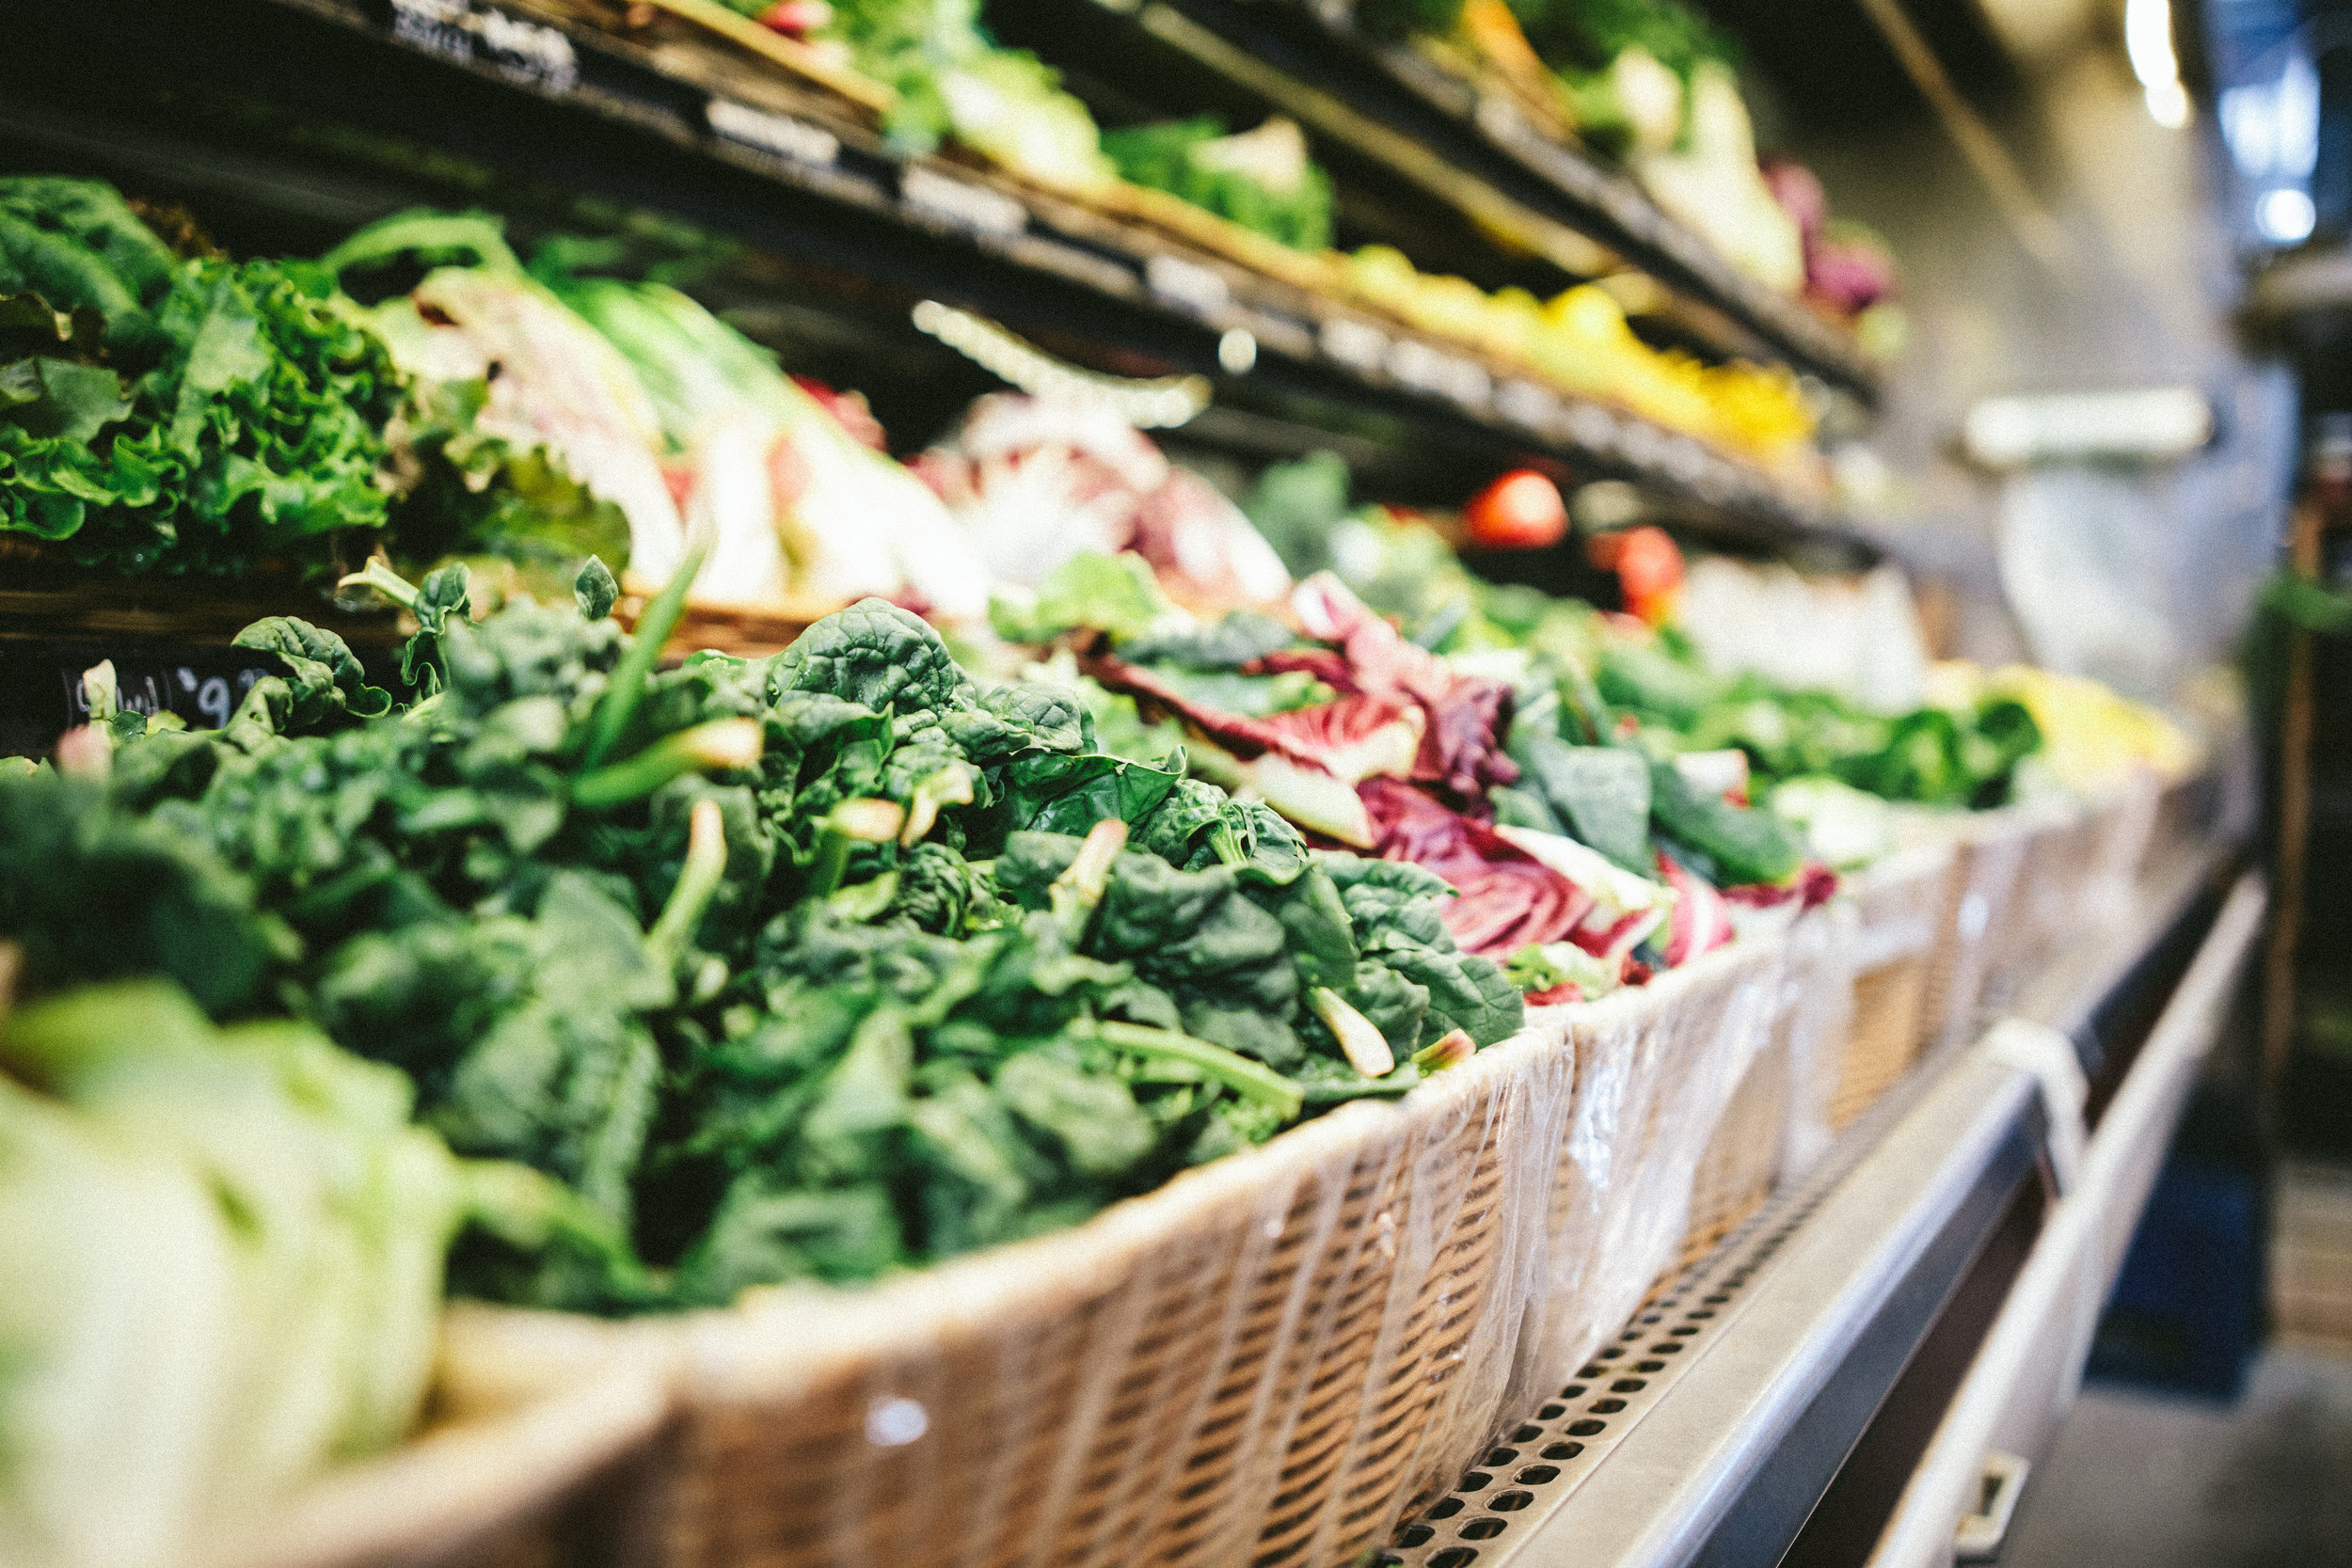 1. Eat green vegetables - Green leafy vegetables are rich in vitamins that help you maintain a balanced diet and support a healthy immune system.